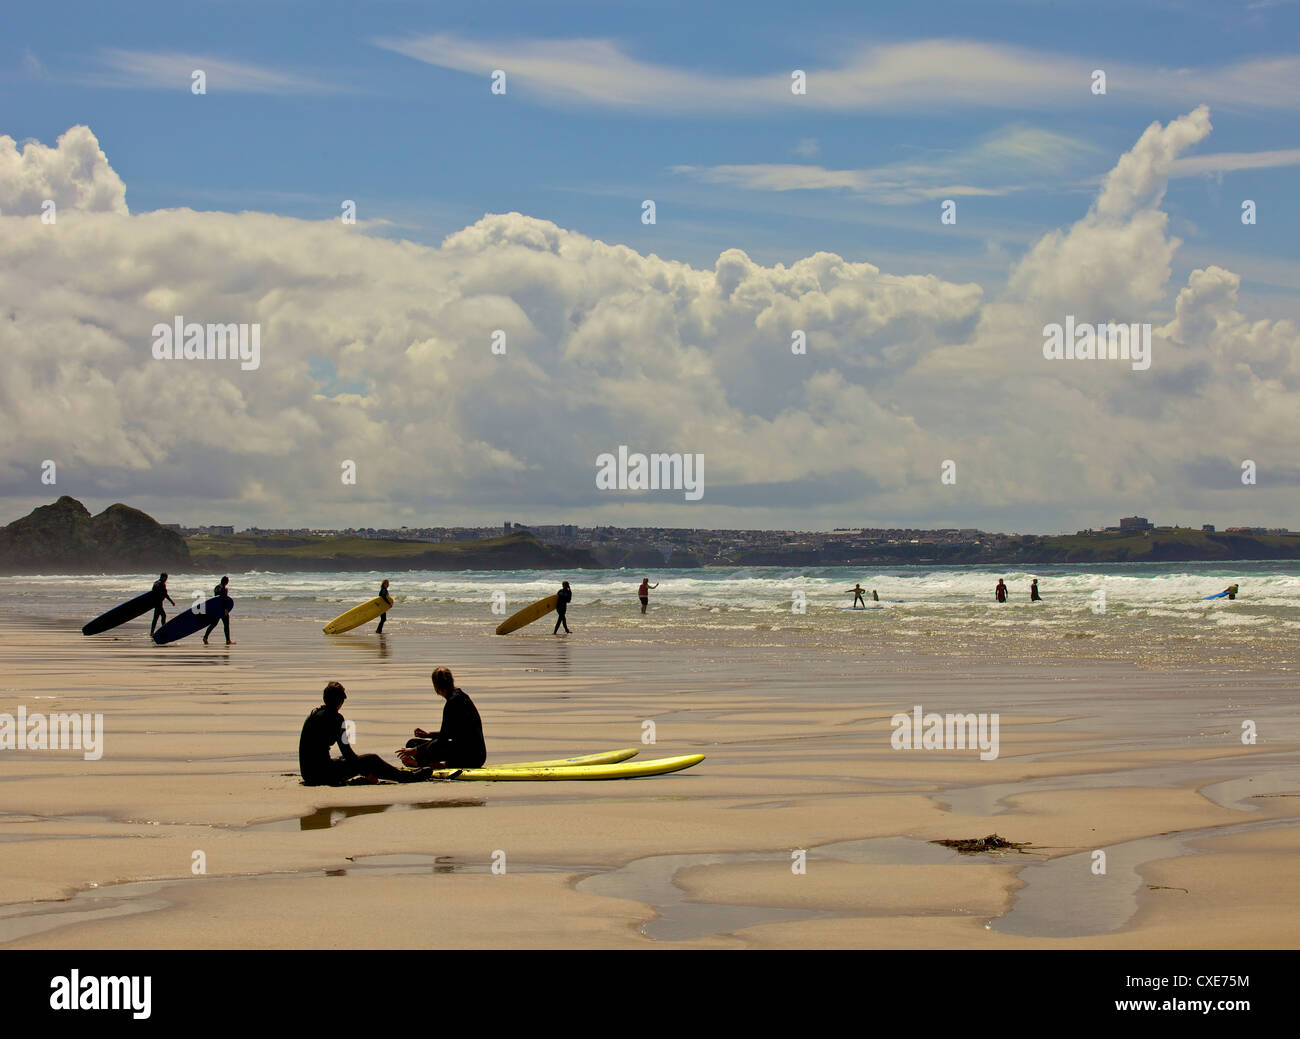 Surfers with boards on Perranporth beach, Cornwall, England - Stock Image